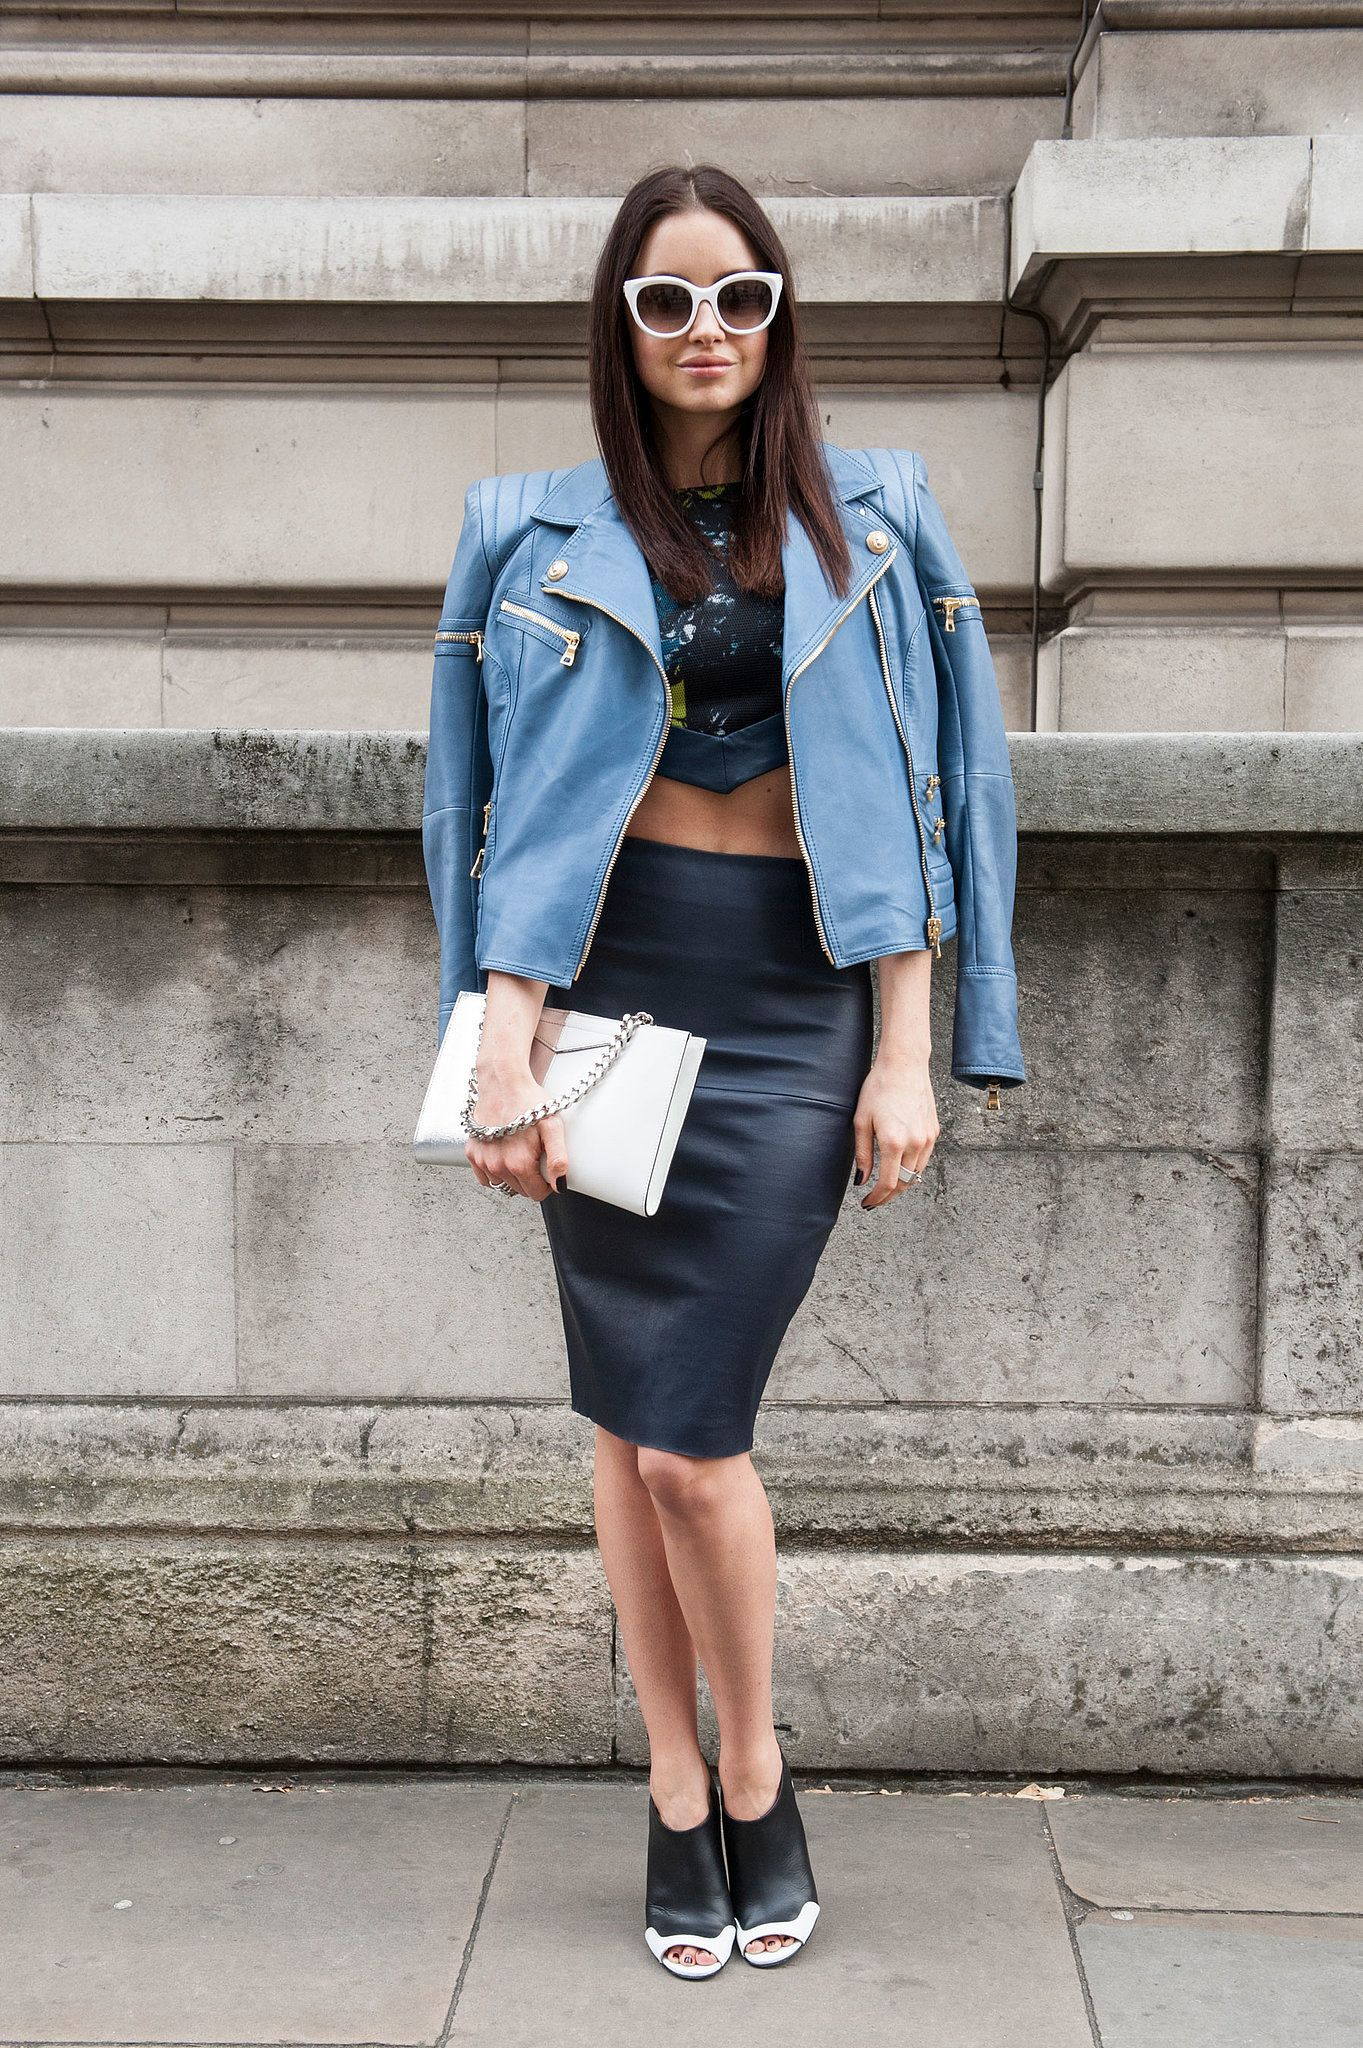 LFW Street Style Day 3: A hint of midriff and bold shades were made for hitting…